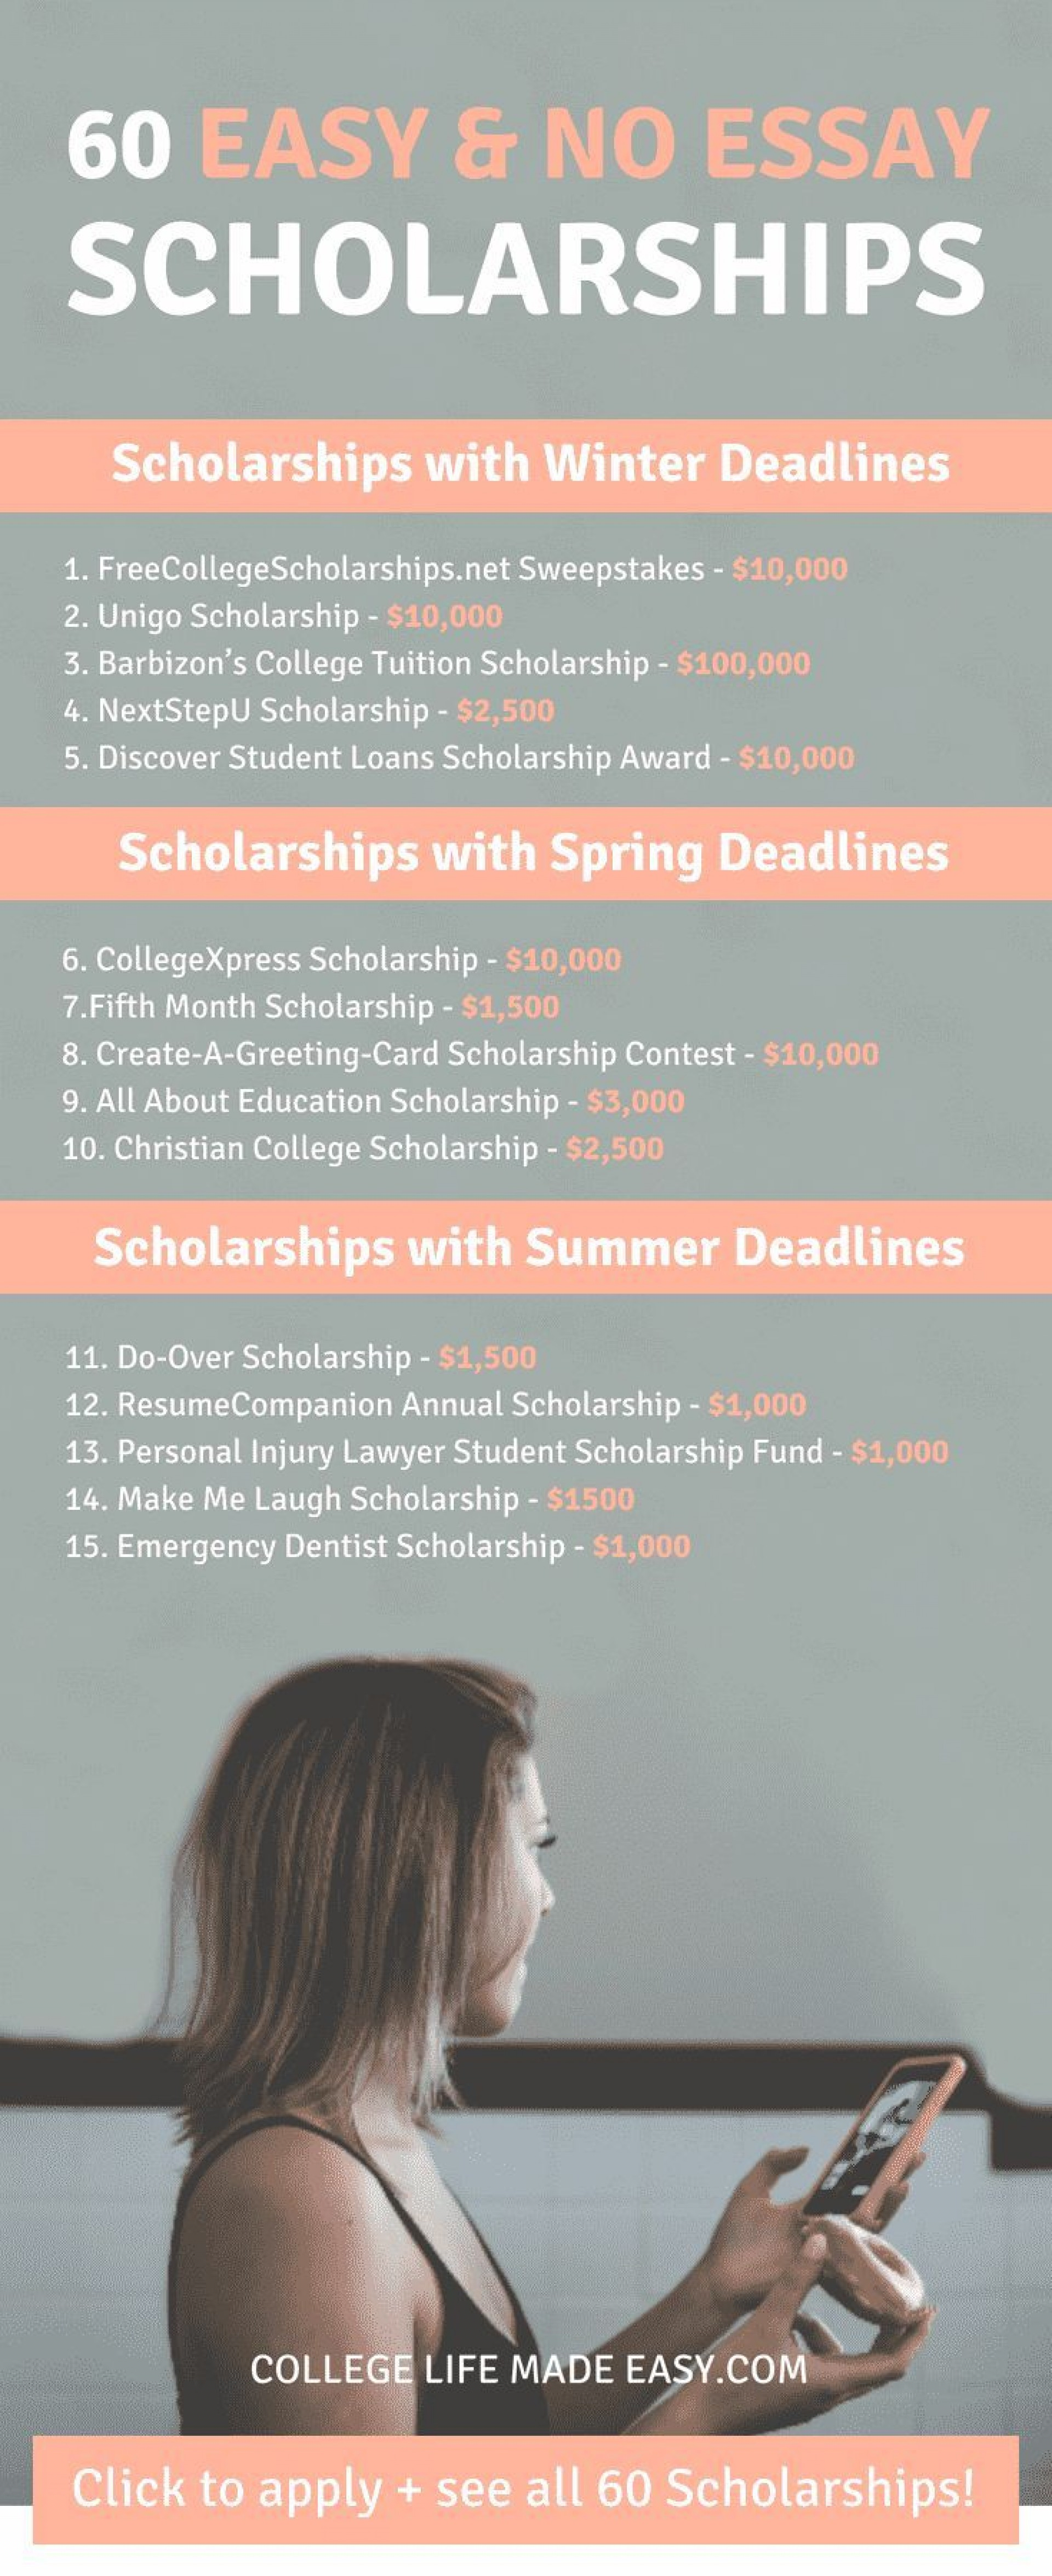 012 Essay Example Scholarship Awesome No For College Students Free Scholarships Required Hispanic 1920